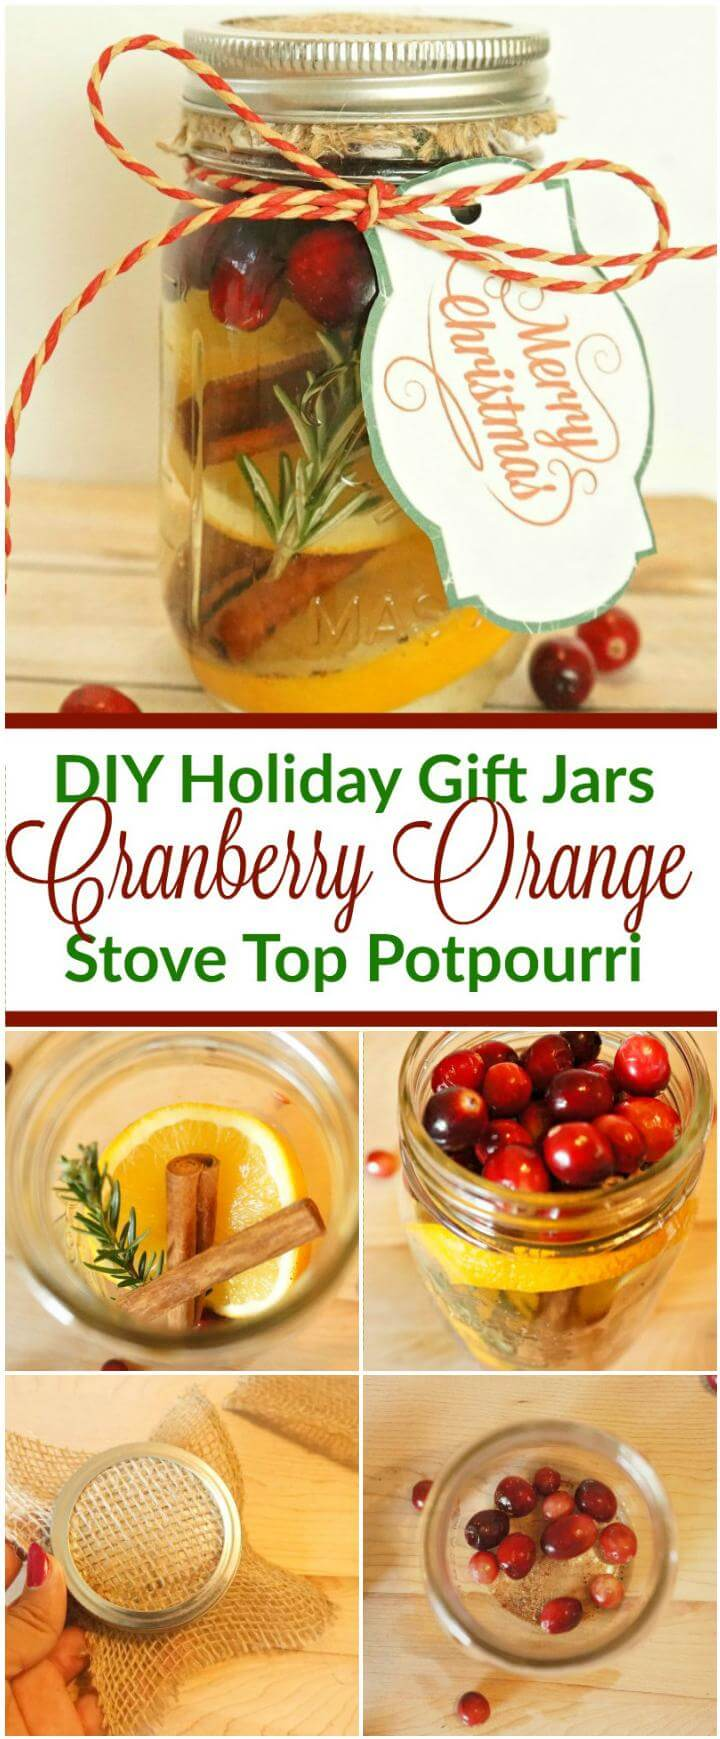 DIY Mason Jar Gift - Cranberry Orange Stove Top Potpourri